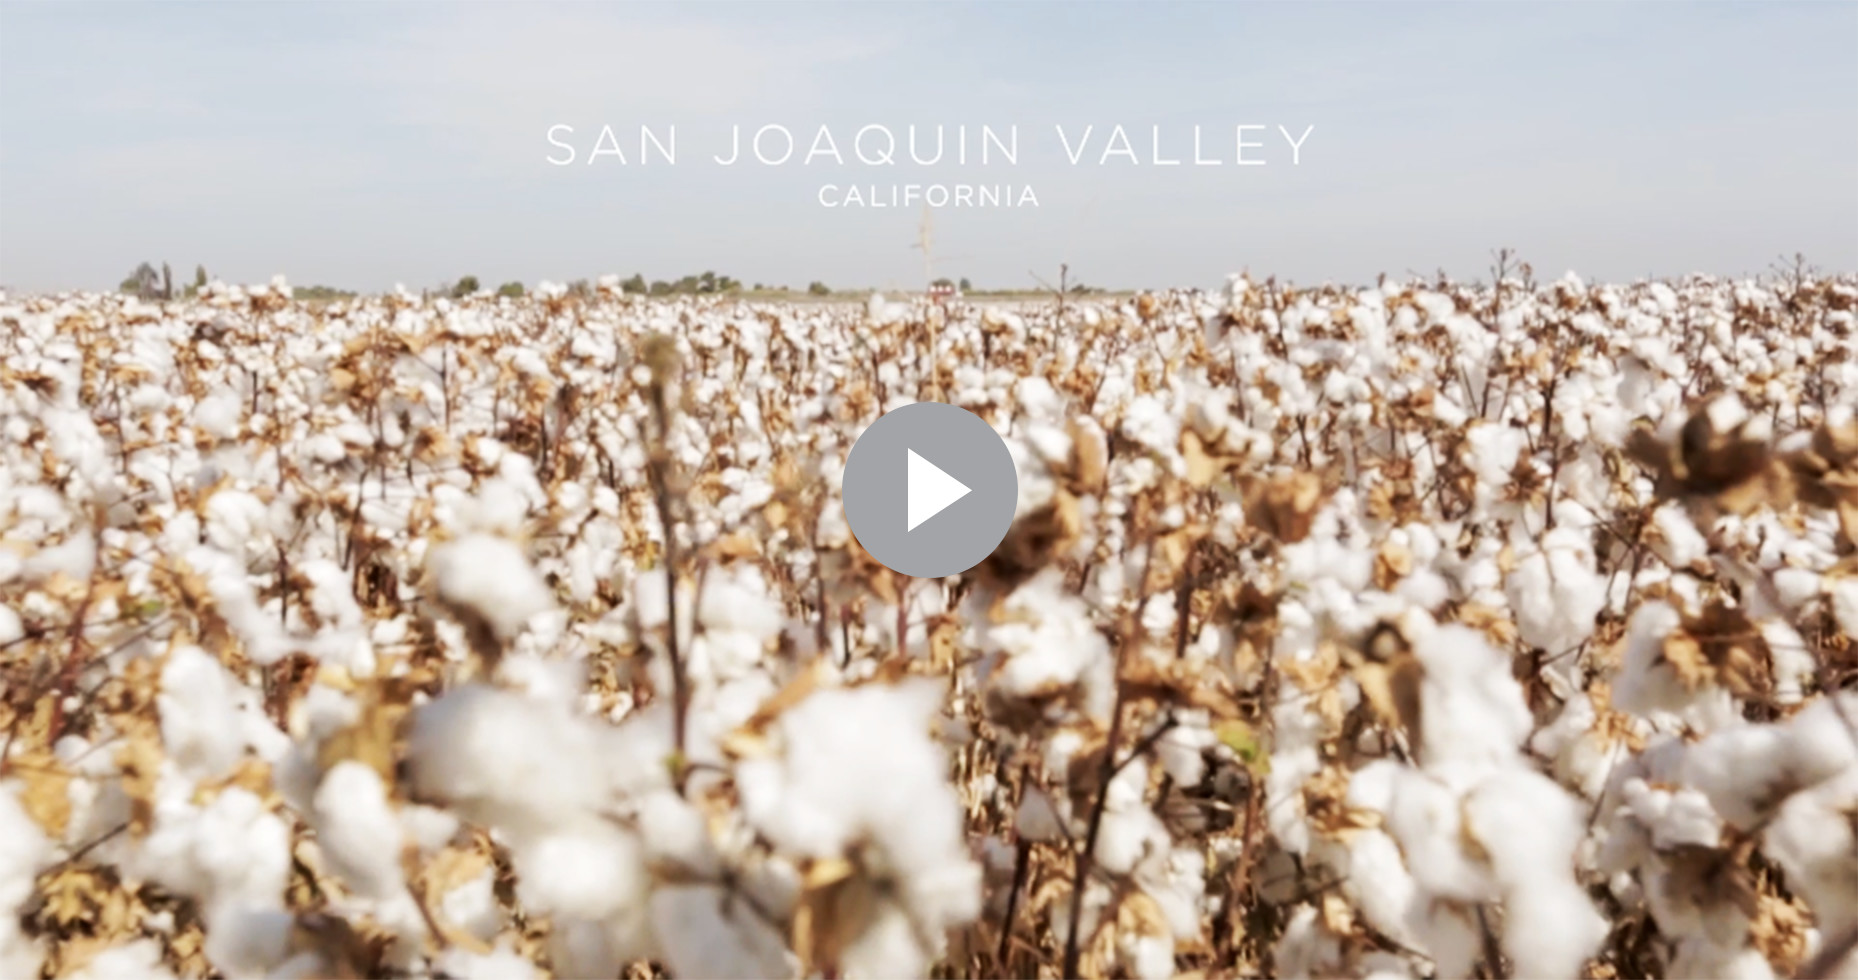 San Joaquin Valley Cotton Field